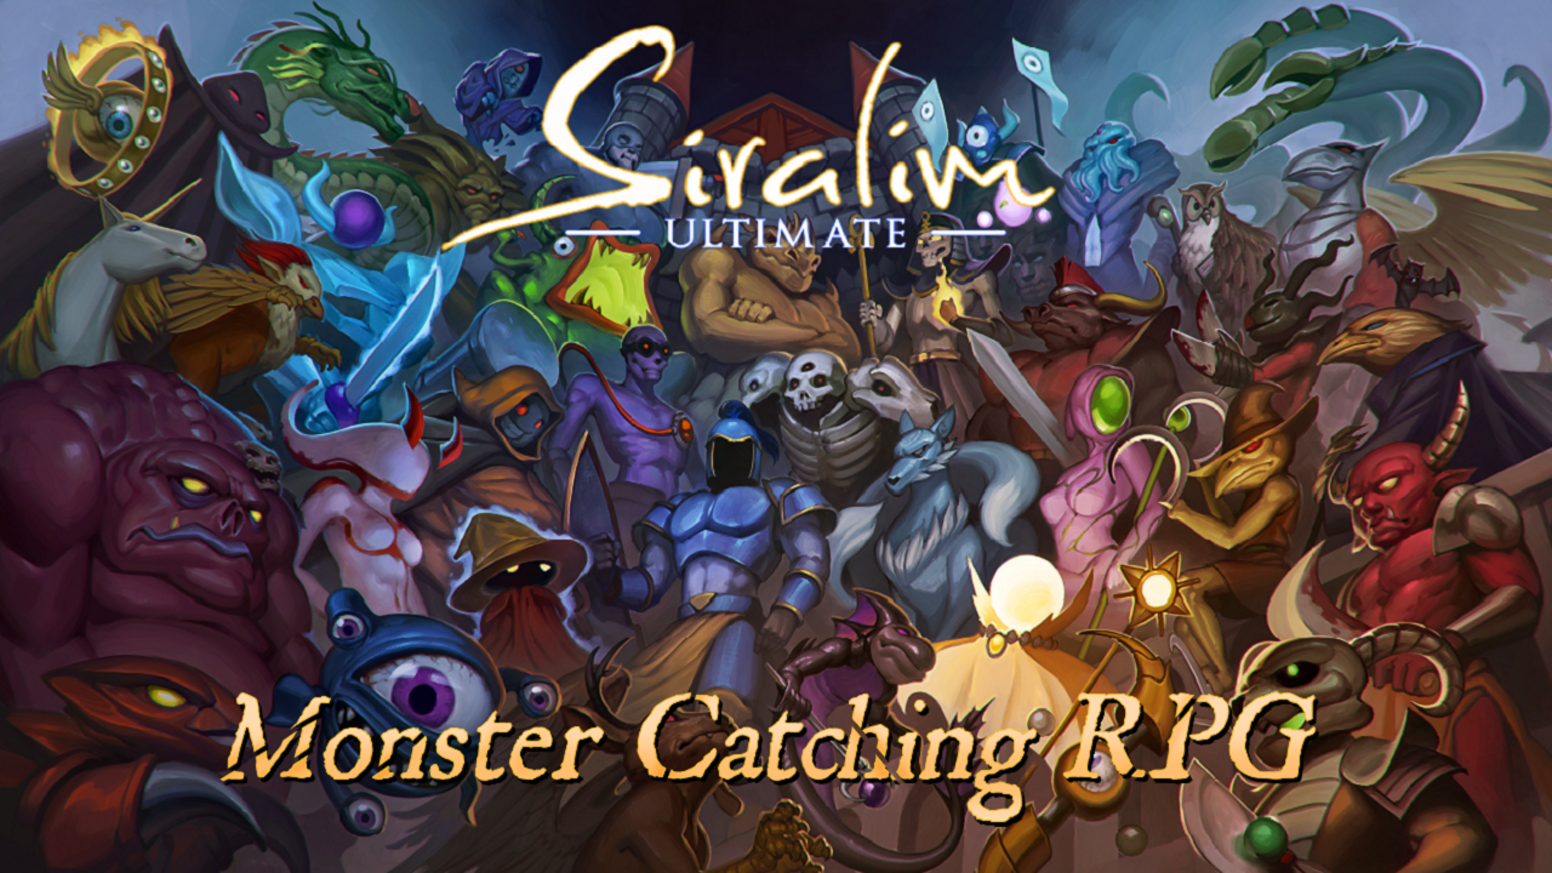 Collect 1000+ creatures and fuse them together. Offers unmatched depth of gameplay and thousands of hours (yes, really!) of content.